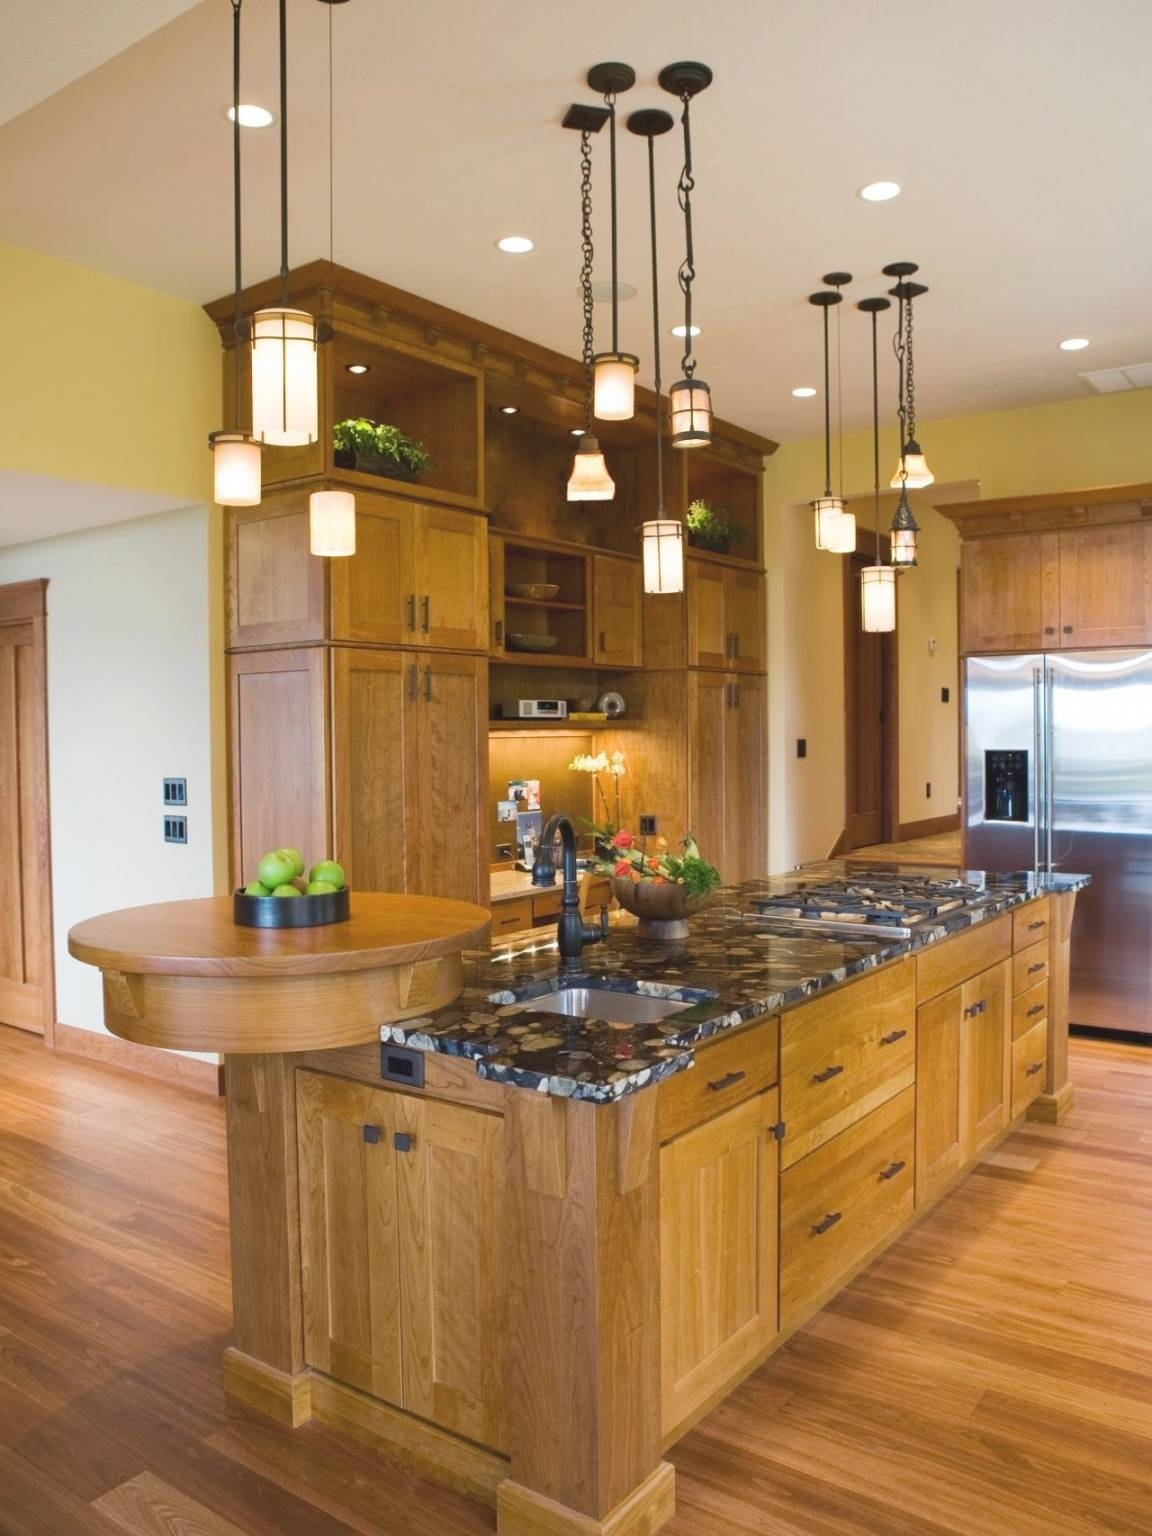 33 Mission Style Pendant Lighting, Mission Style Pendant Lighting In Mission Style Pendant Lights (Photo 12 of 15)